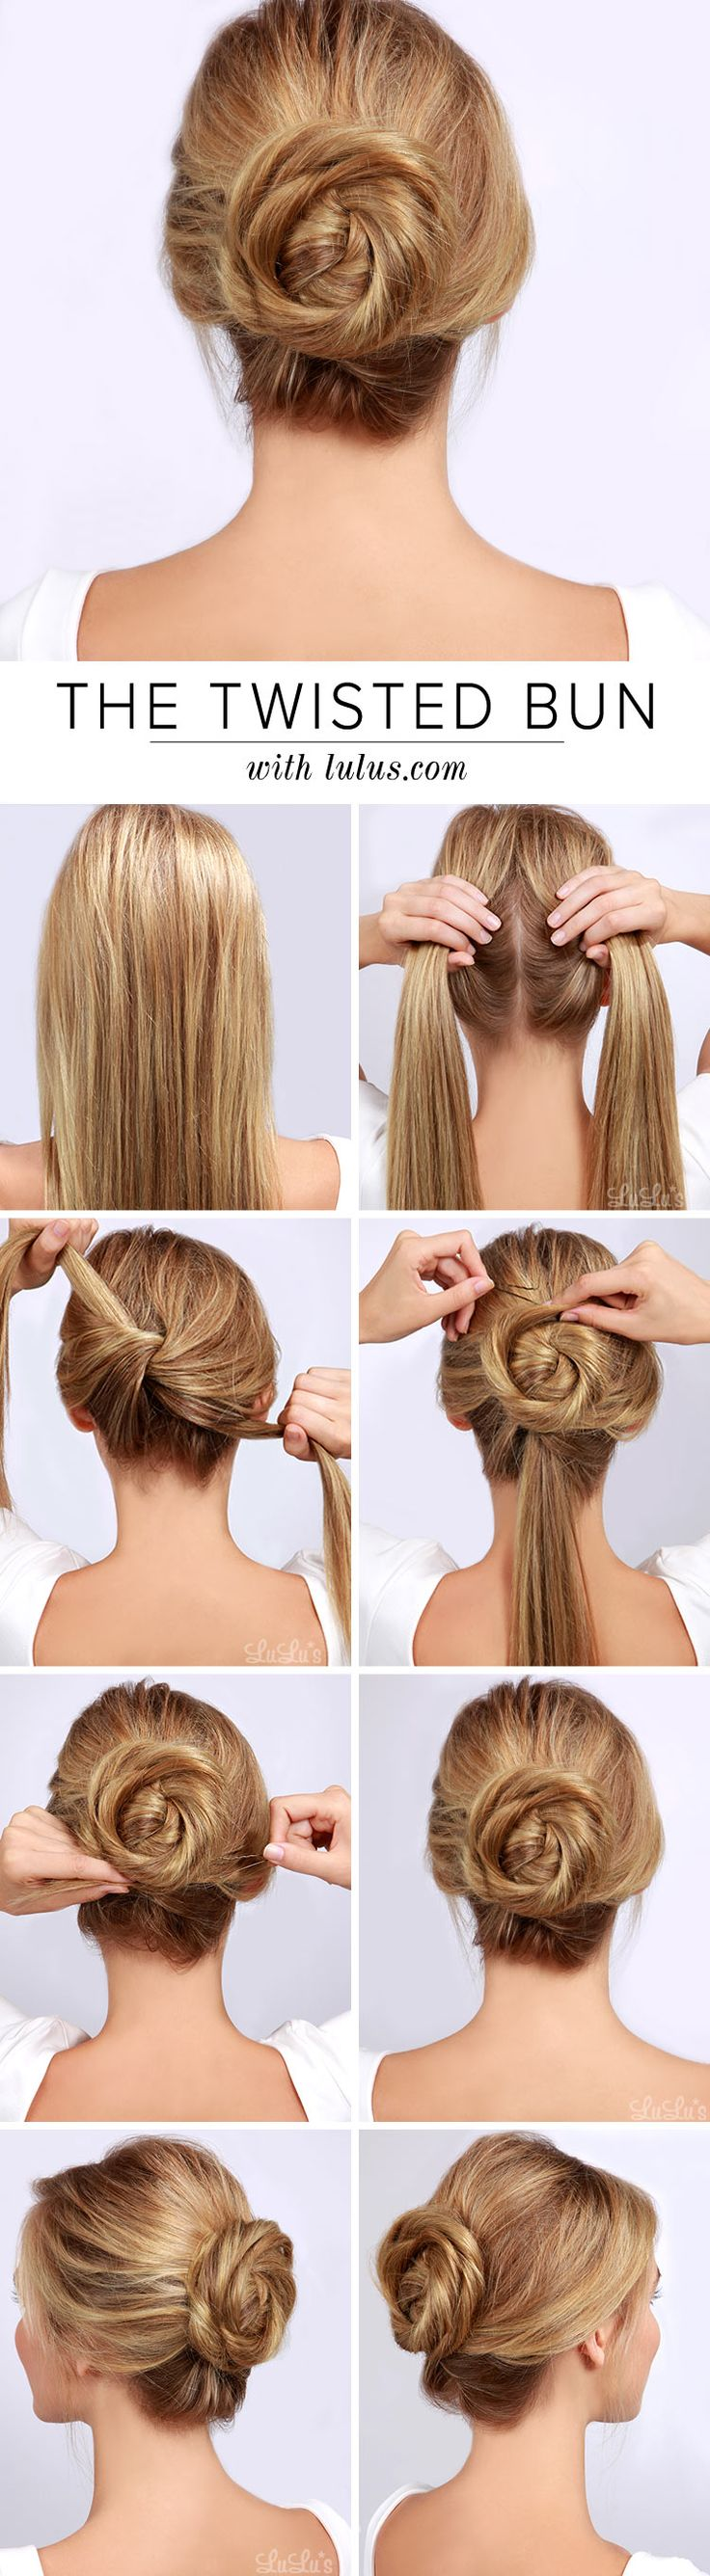 hairstyling22